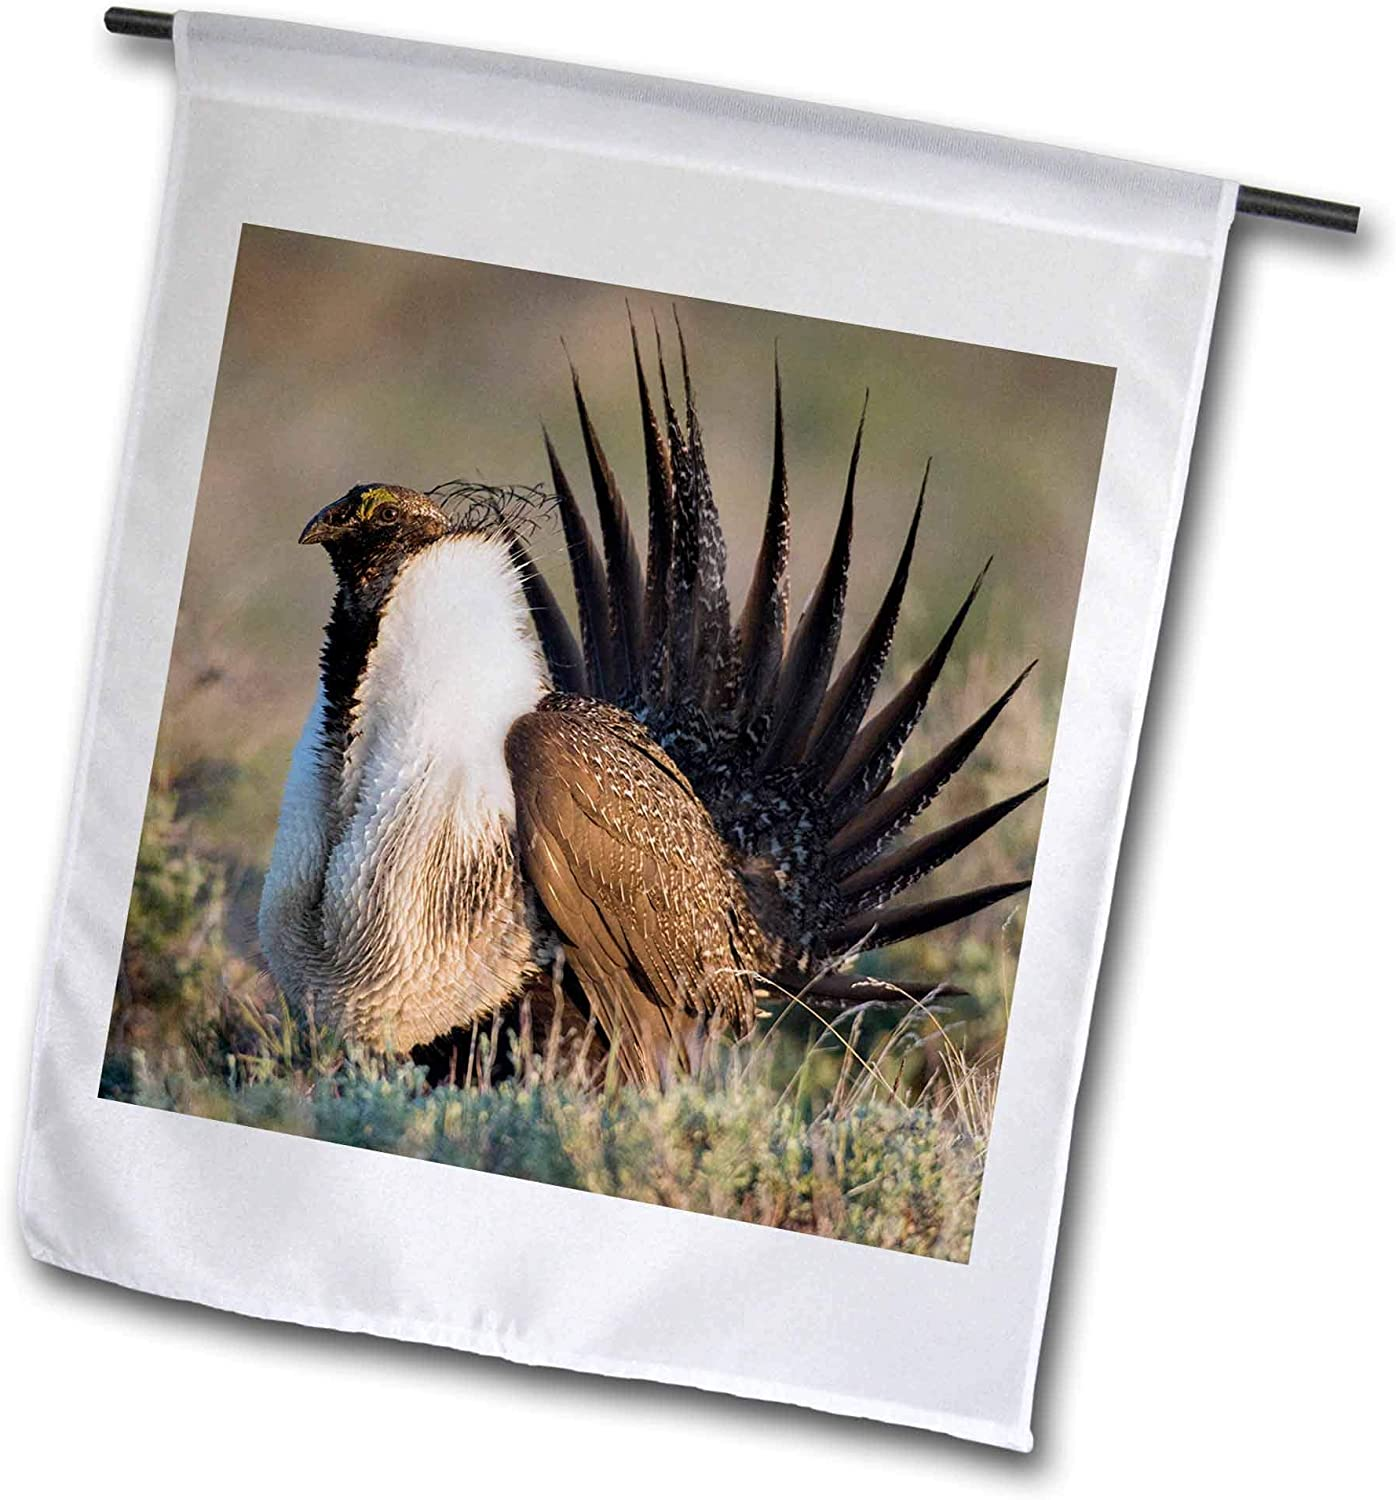 3dRose Danita Delimont - Birds - Sage Grouse, Courtship Display - 12 x 18 inch Garden Flag (fl_313966_1)